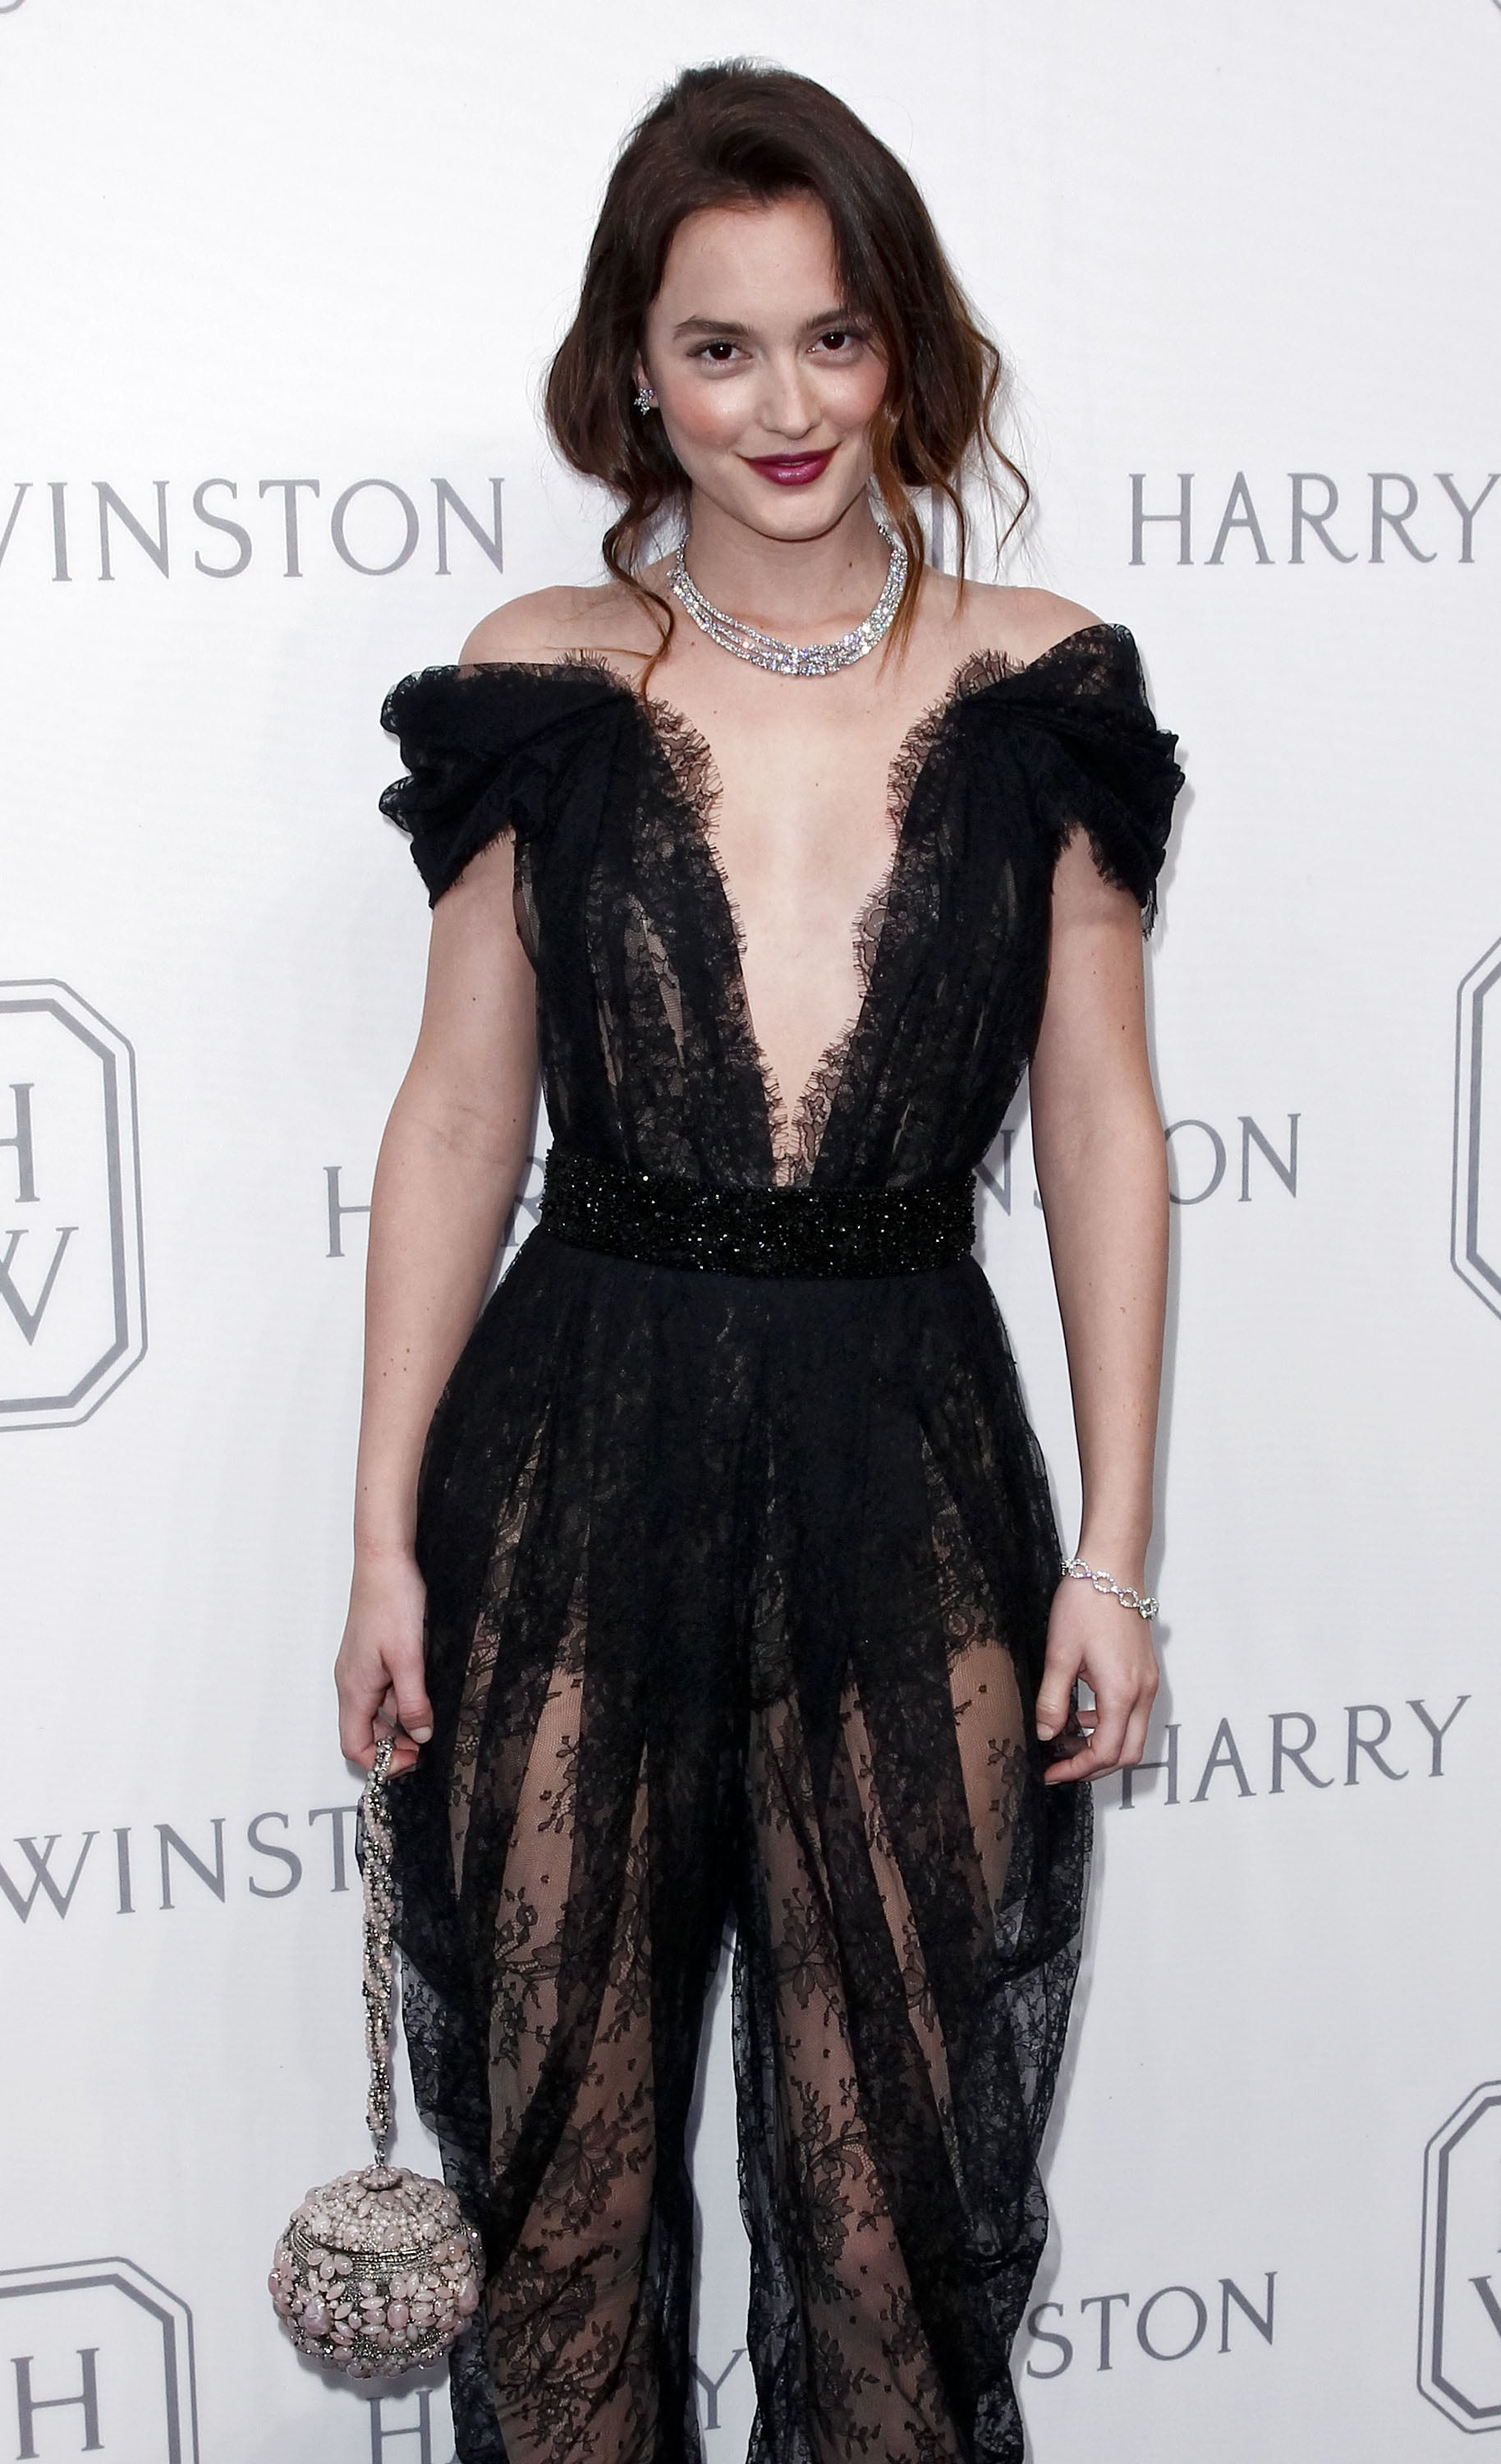 Pictures of Halle Berry and Leighton Meester at Court of Jewels : POPSUGAR Celebrity UK